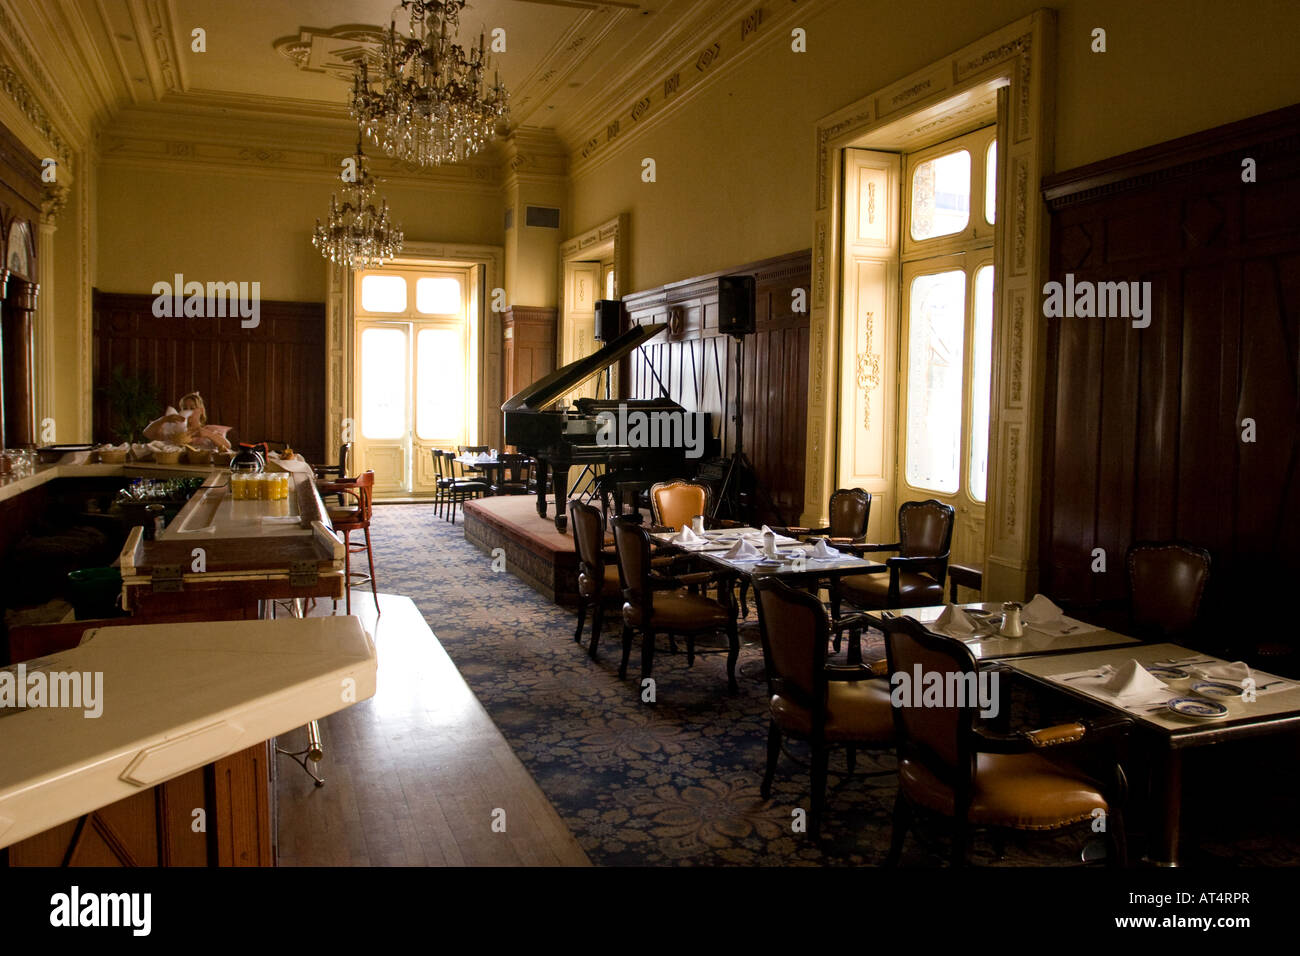 Interior of 'Casa de los Azulejos' (House of tiles) in Mexico City, owned by the Sanborn´s store-restaurant - Stock Image